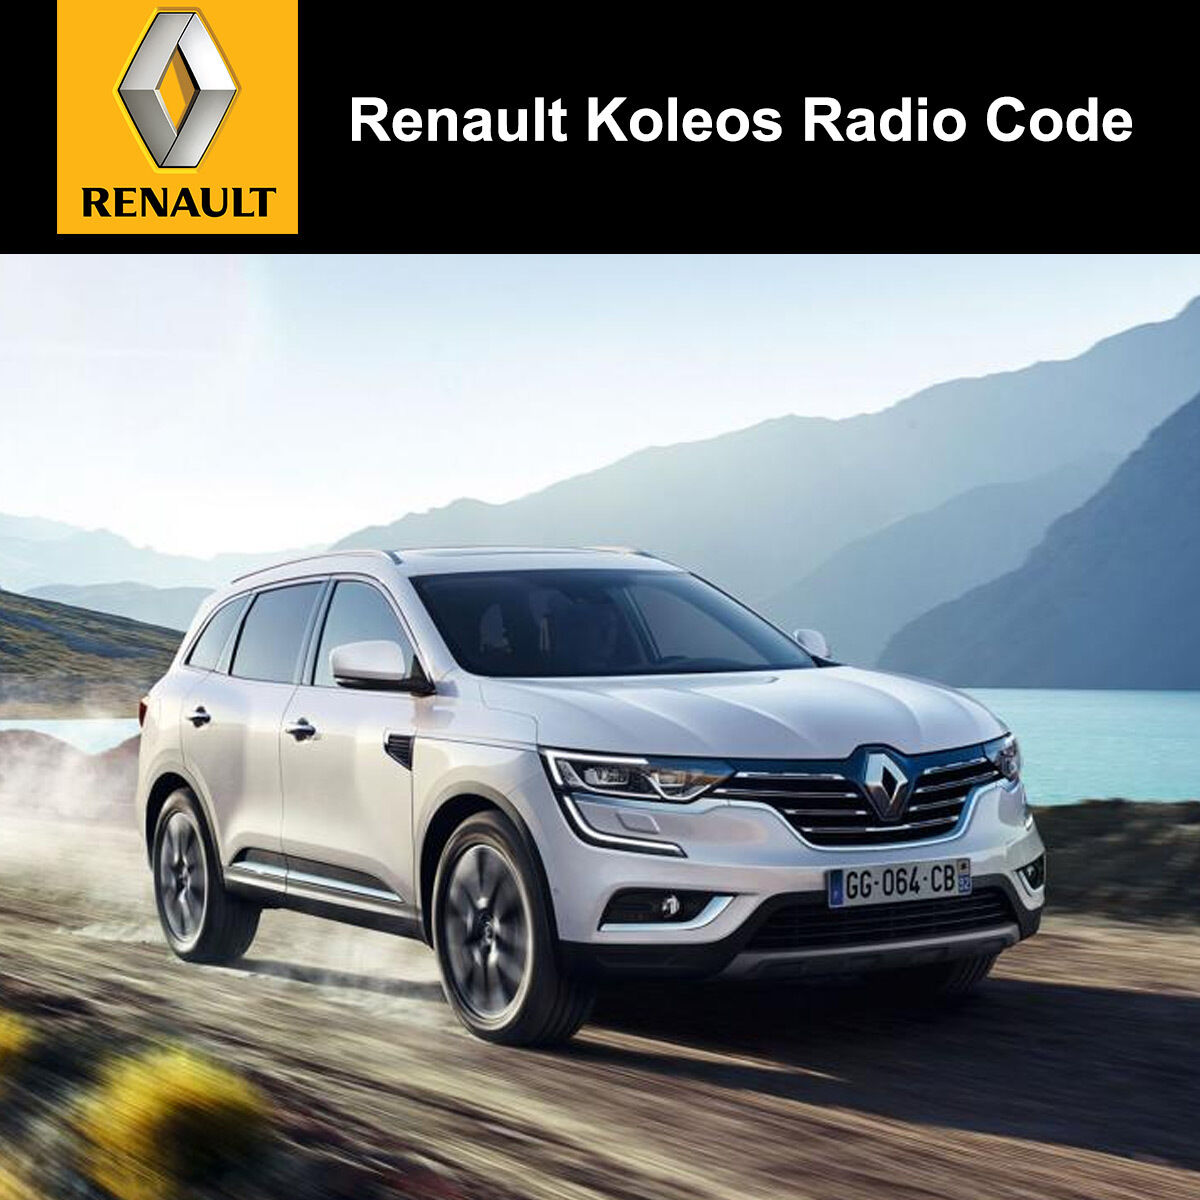 Details about Renault Koleo's Radio Code Stereo Decode Car Unlock Fast  Service UK All Vehicles